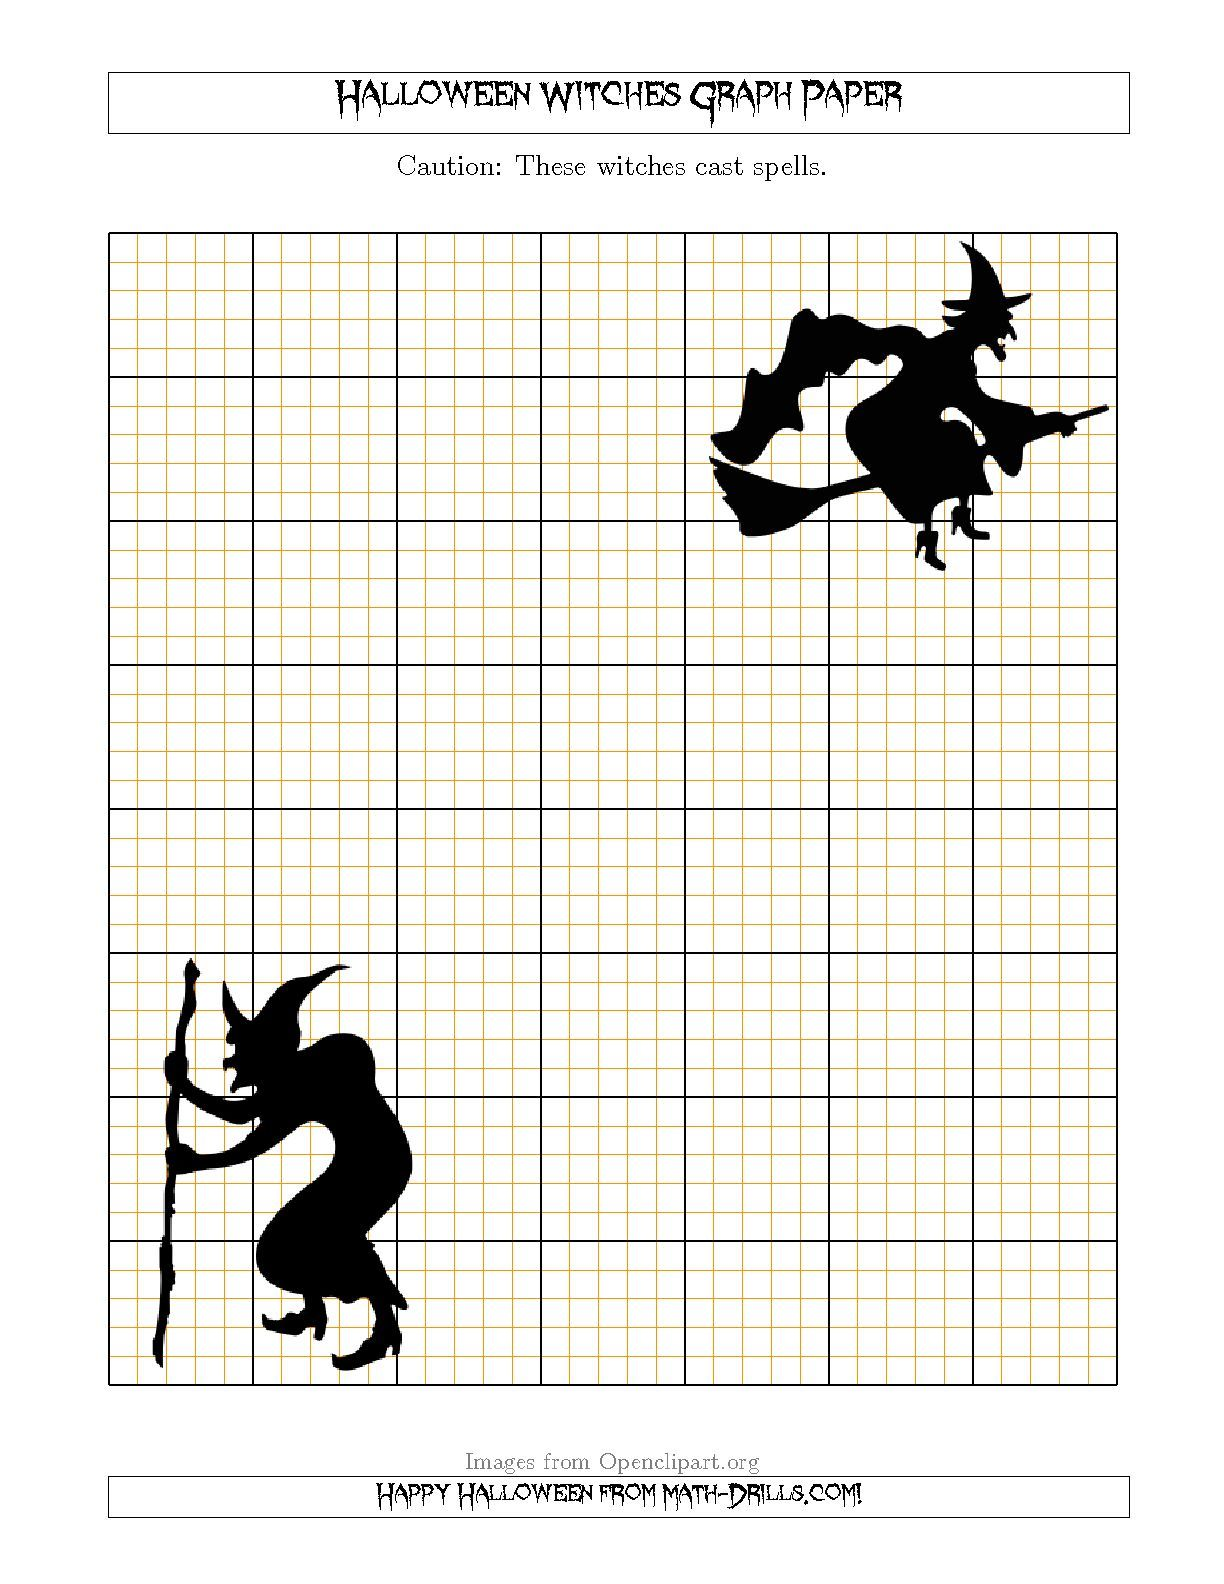 The Halloween Witches 5 Lines Inch Graph Paper Math